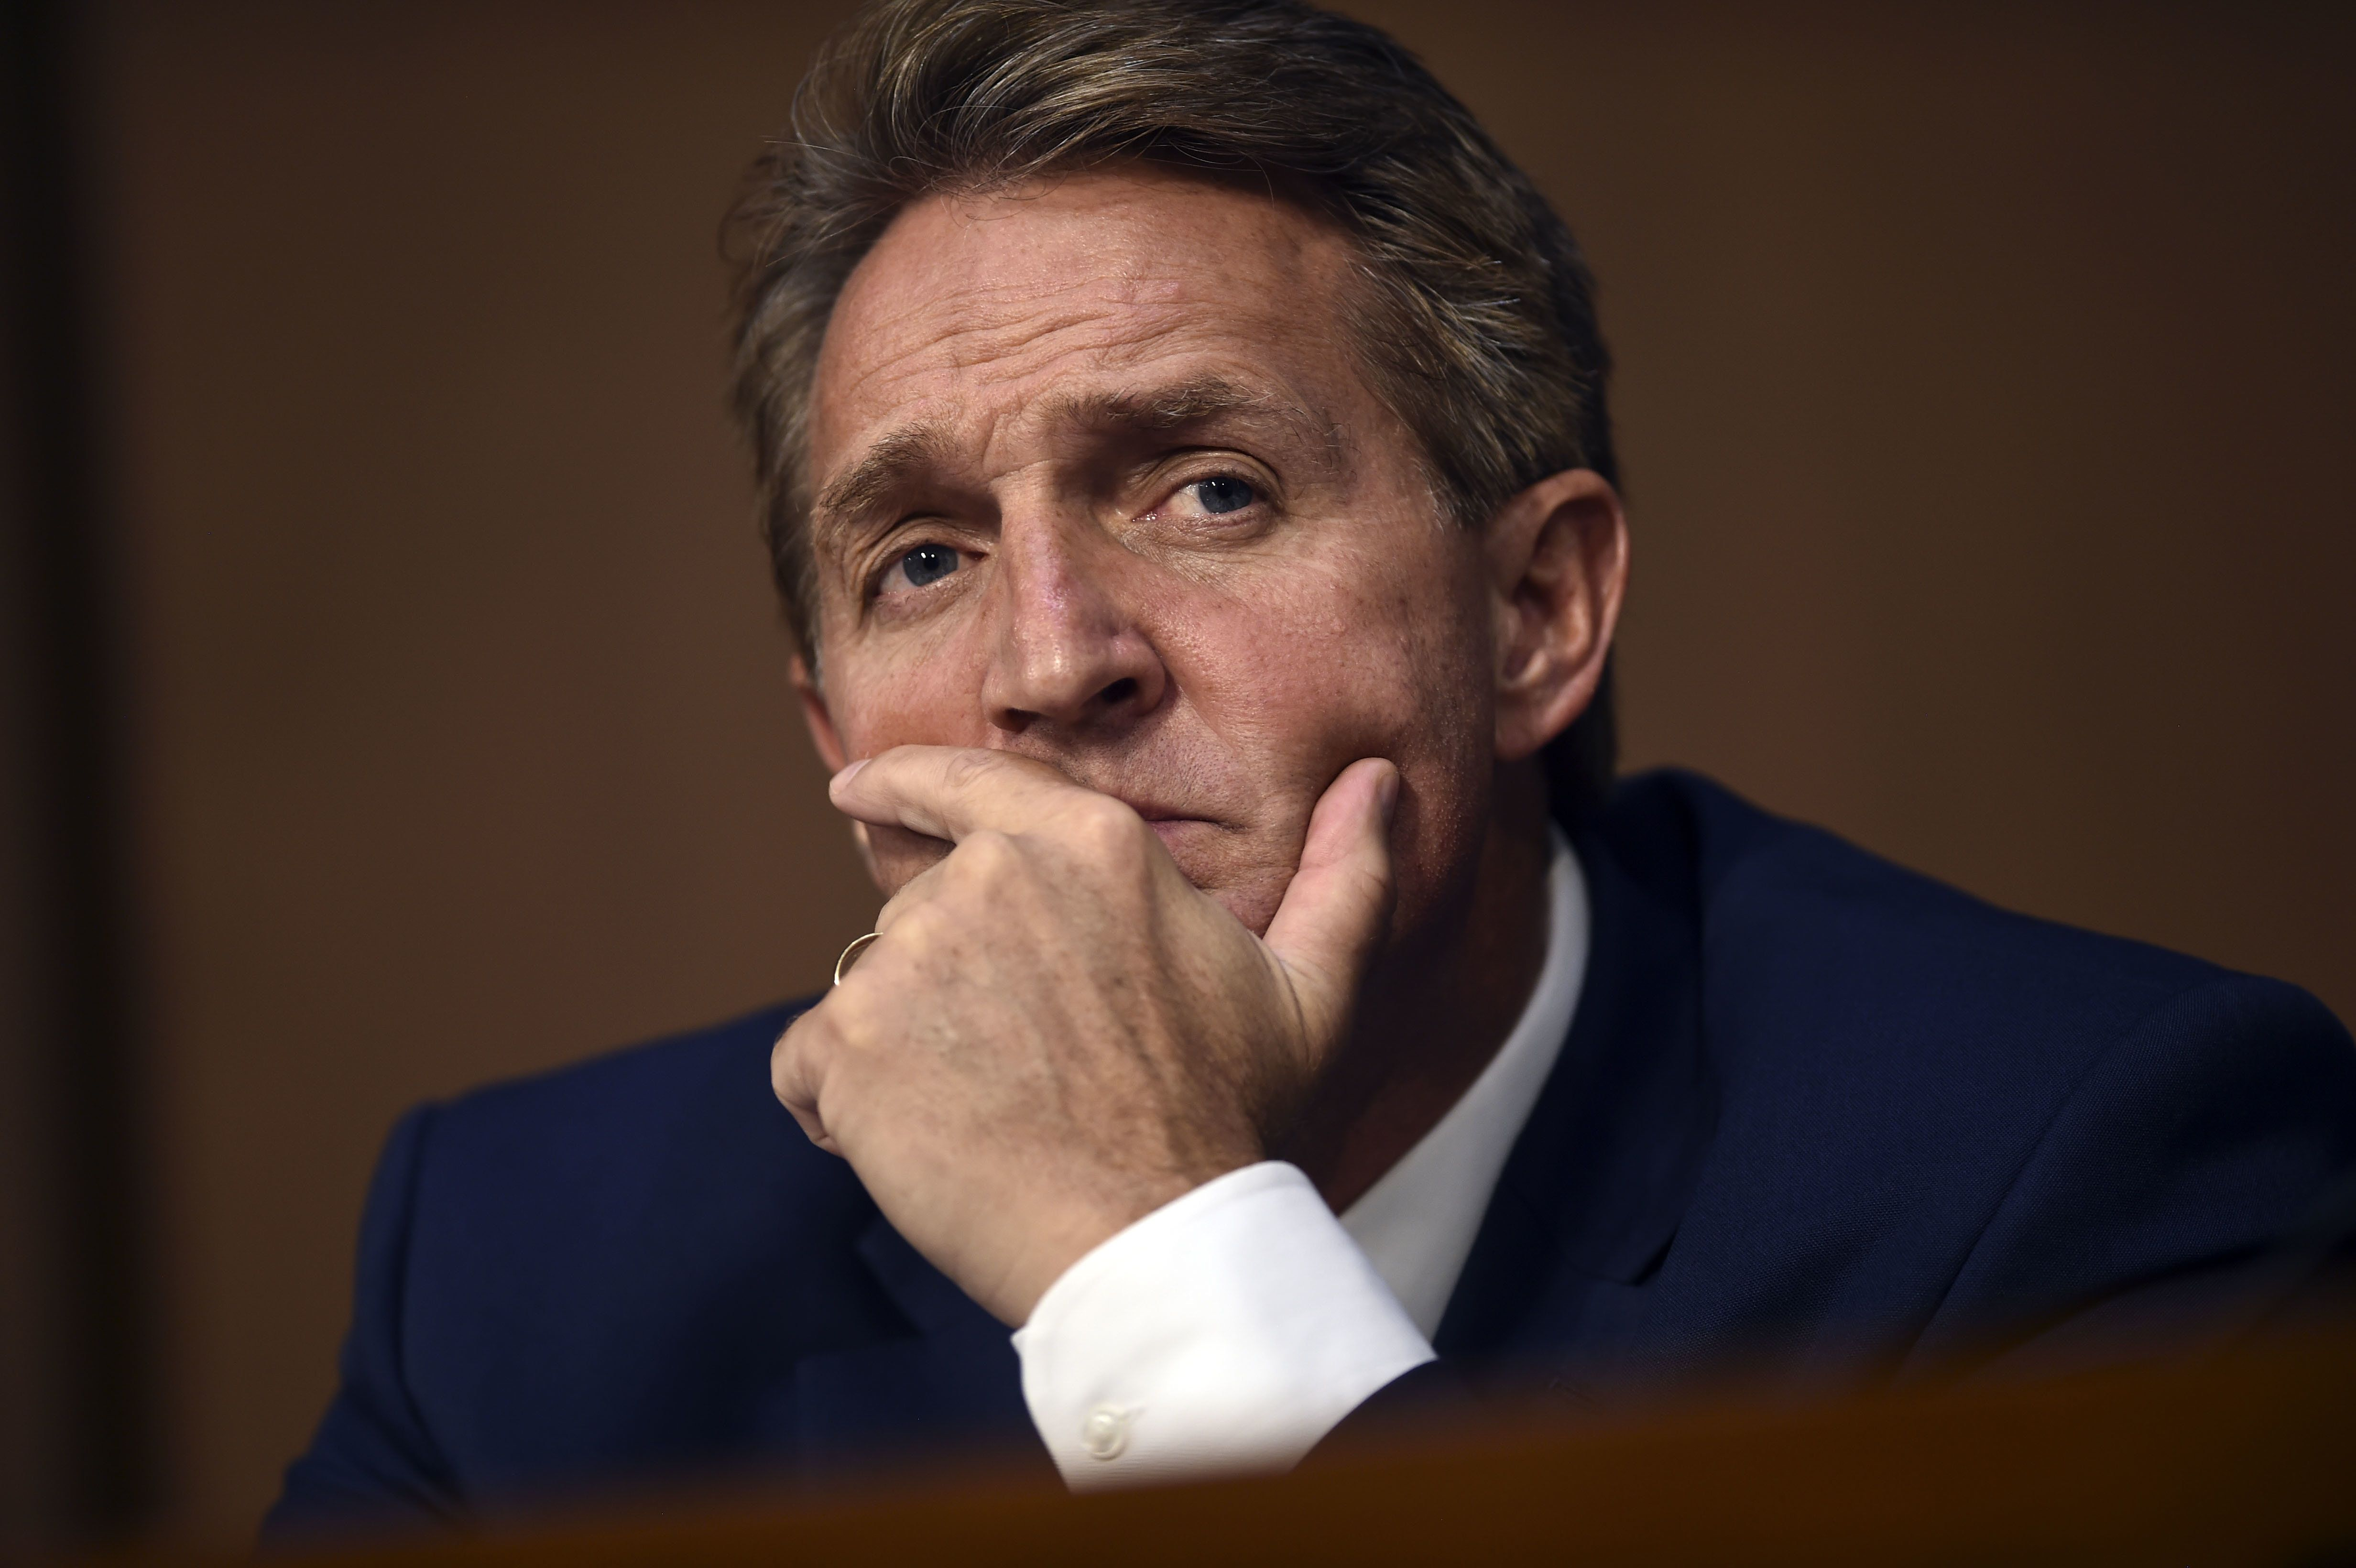 Sen. Jeff Flake(R-AZ) listens during Brett Kavanaugh's US Senate Judiciary Committee confirmation hearing to be an Associate Justice on the US Supreme Court, on Capitol Hill in Washington, DC, September 4, 2018. - President Donald Trump's newest Supreme Court nominee Brett Kavanaugh is expected to face punishing questioning from Democrats this week over his endorsement of presidential immunity and his opposition to abortion. (Photo by Brendan SMIALOWSKI / AFP)        (Photo credit should read BRENDAN SMIALOWSKI/AFP/Getty Images)